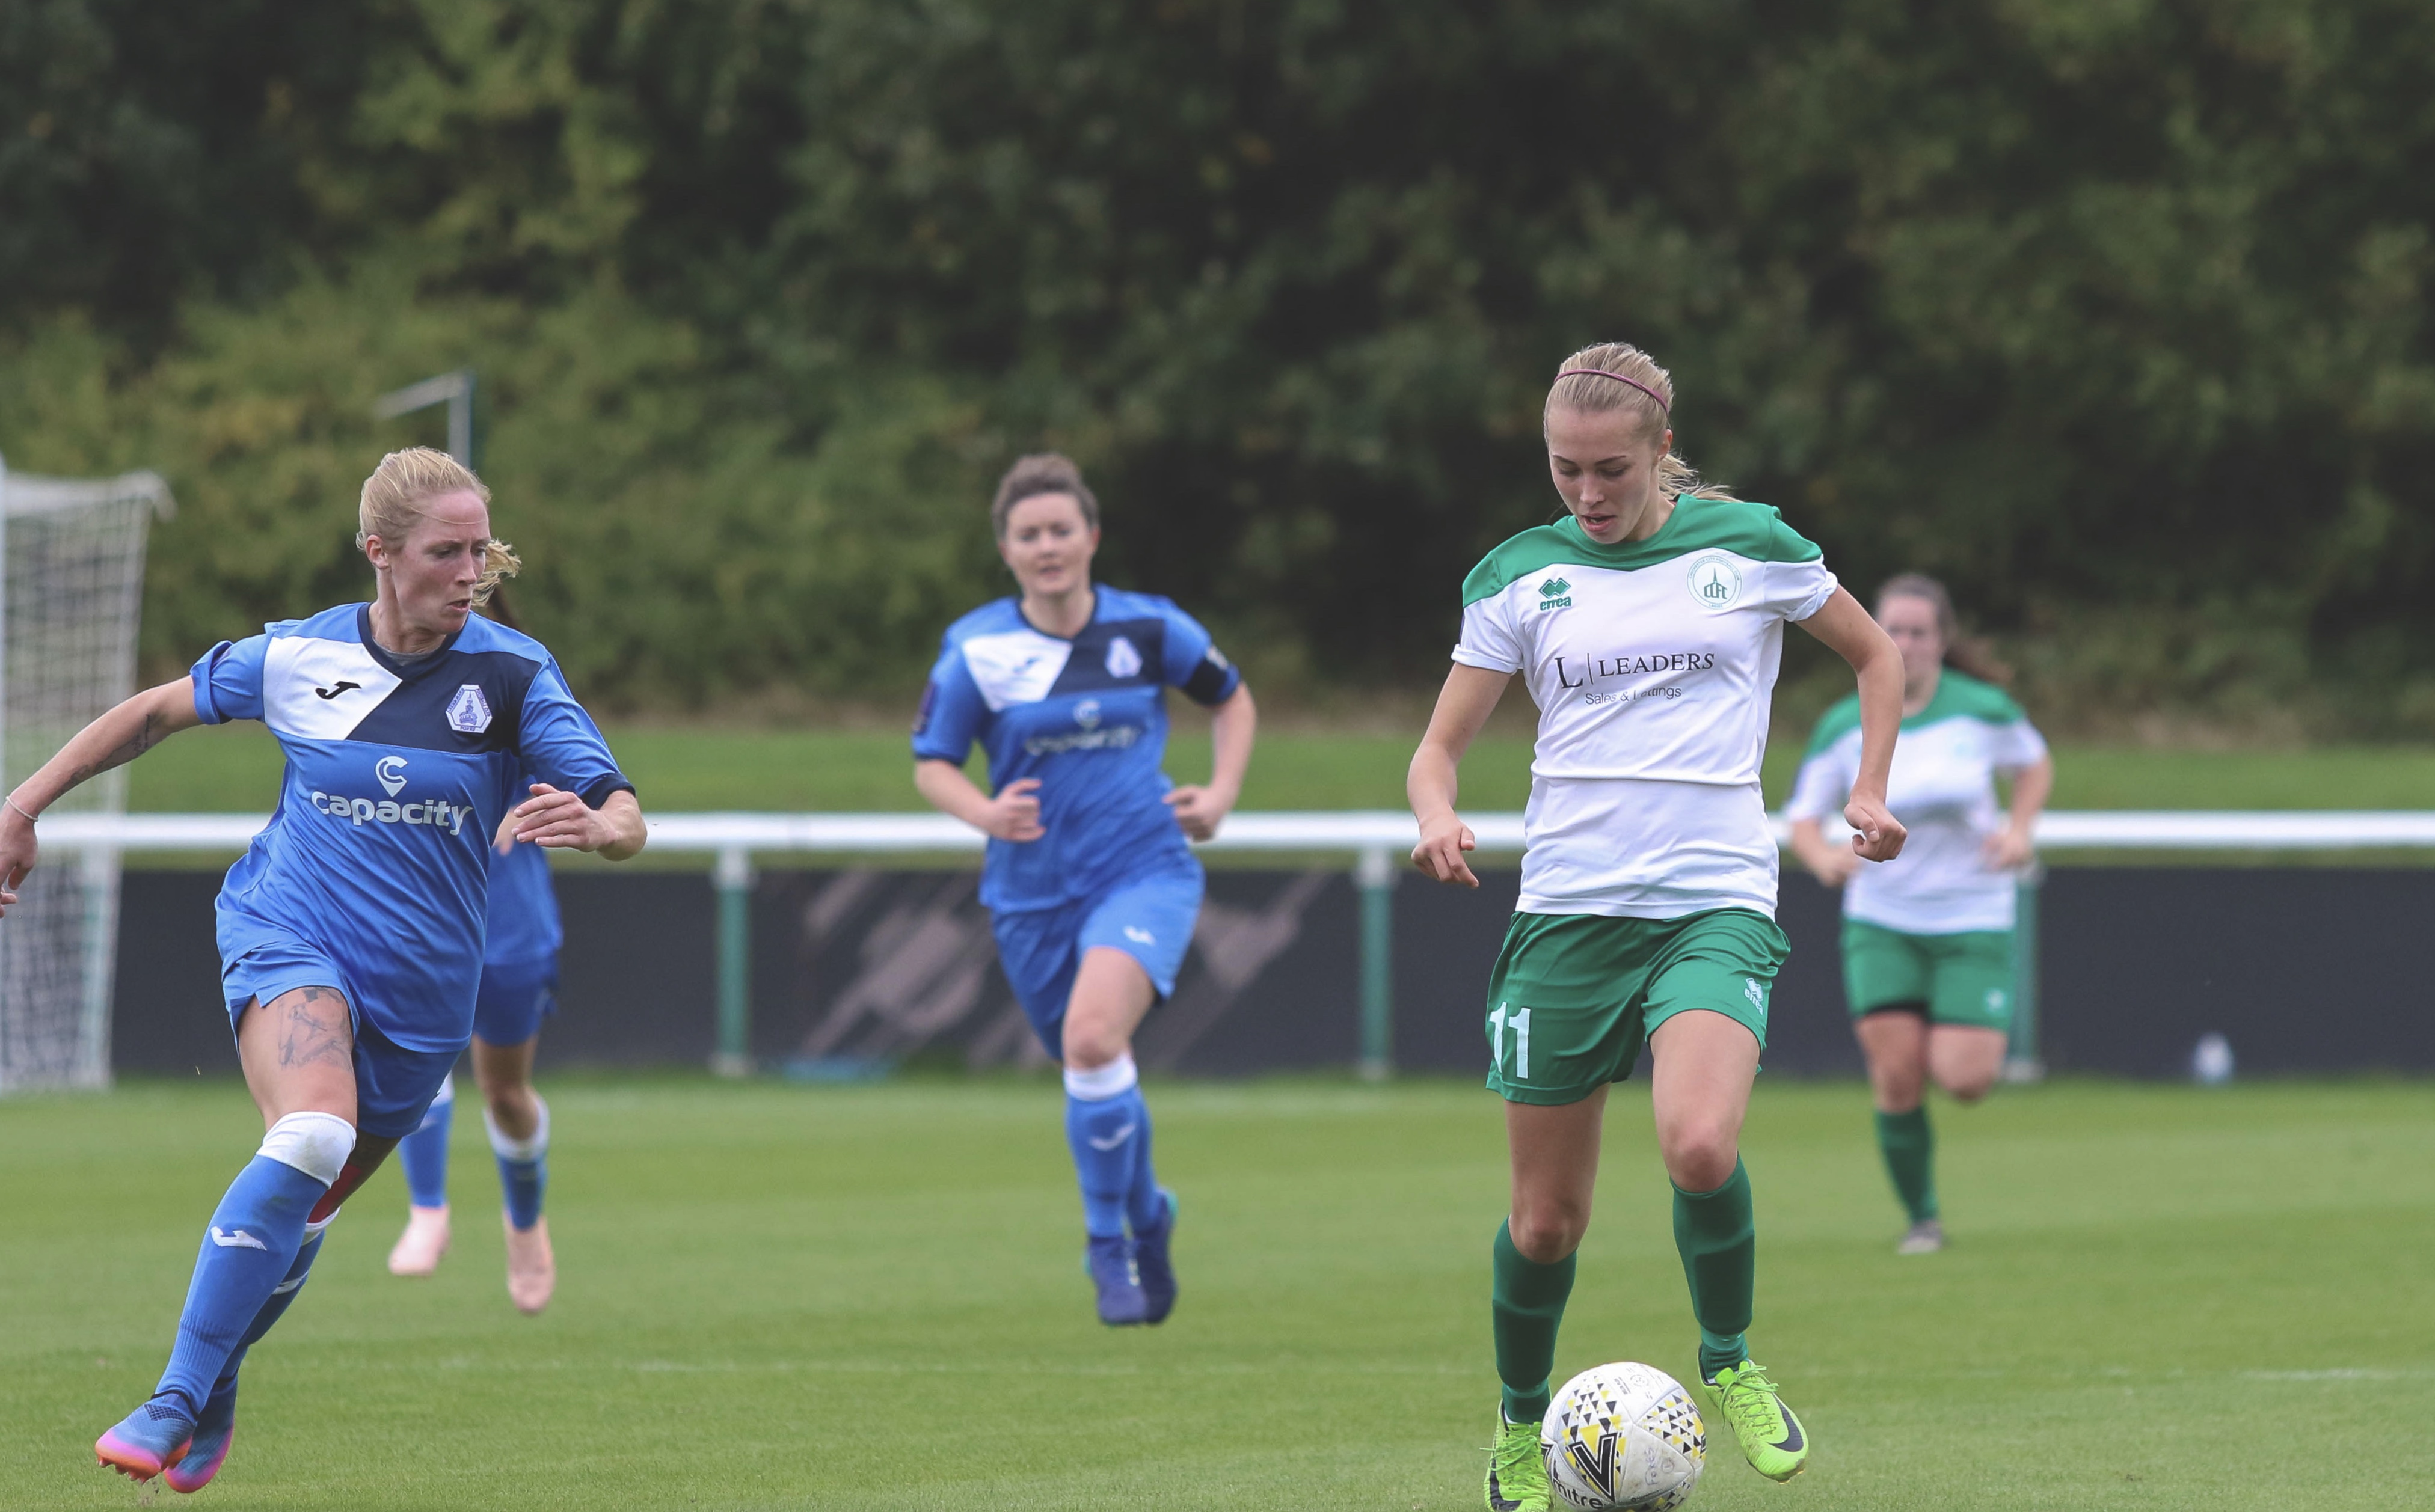 Tash Stephens at Loughborough Foxes 0-1 Chichester City Ladies (30.09.18) Photo by Sheena Booker